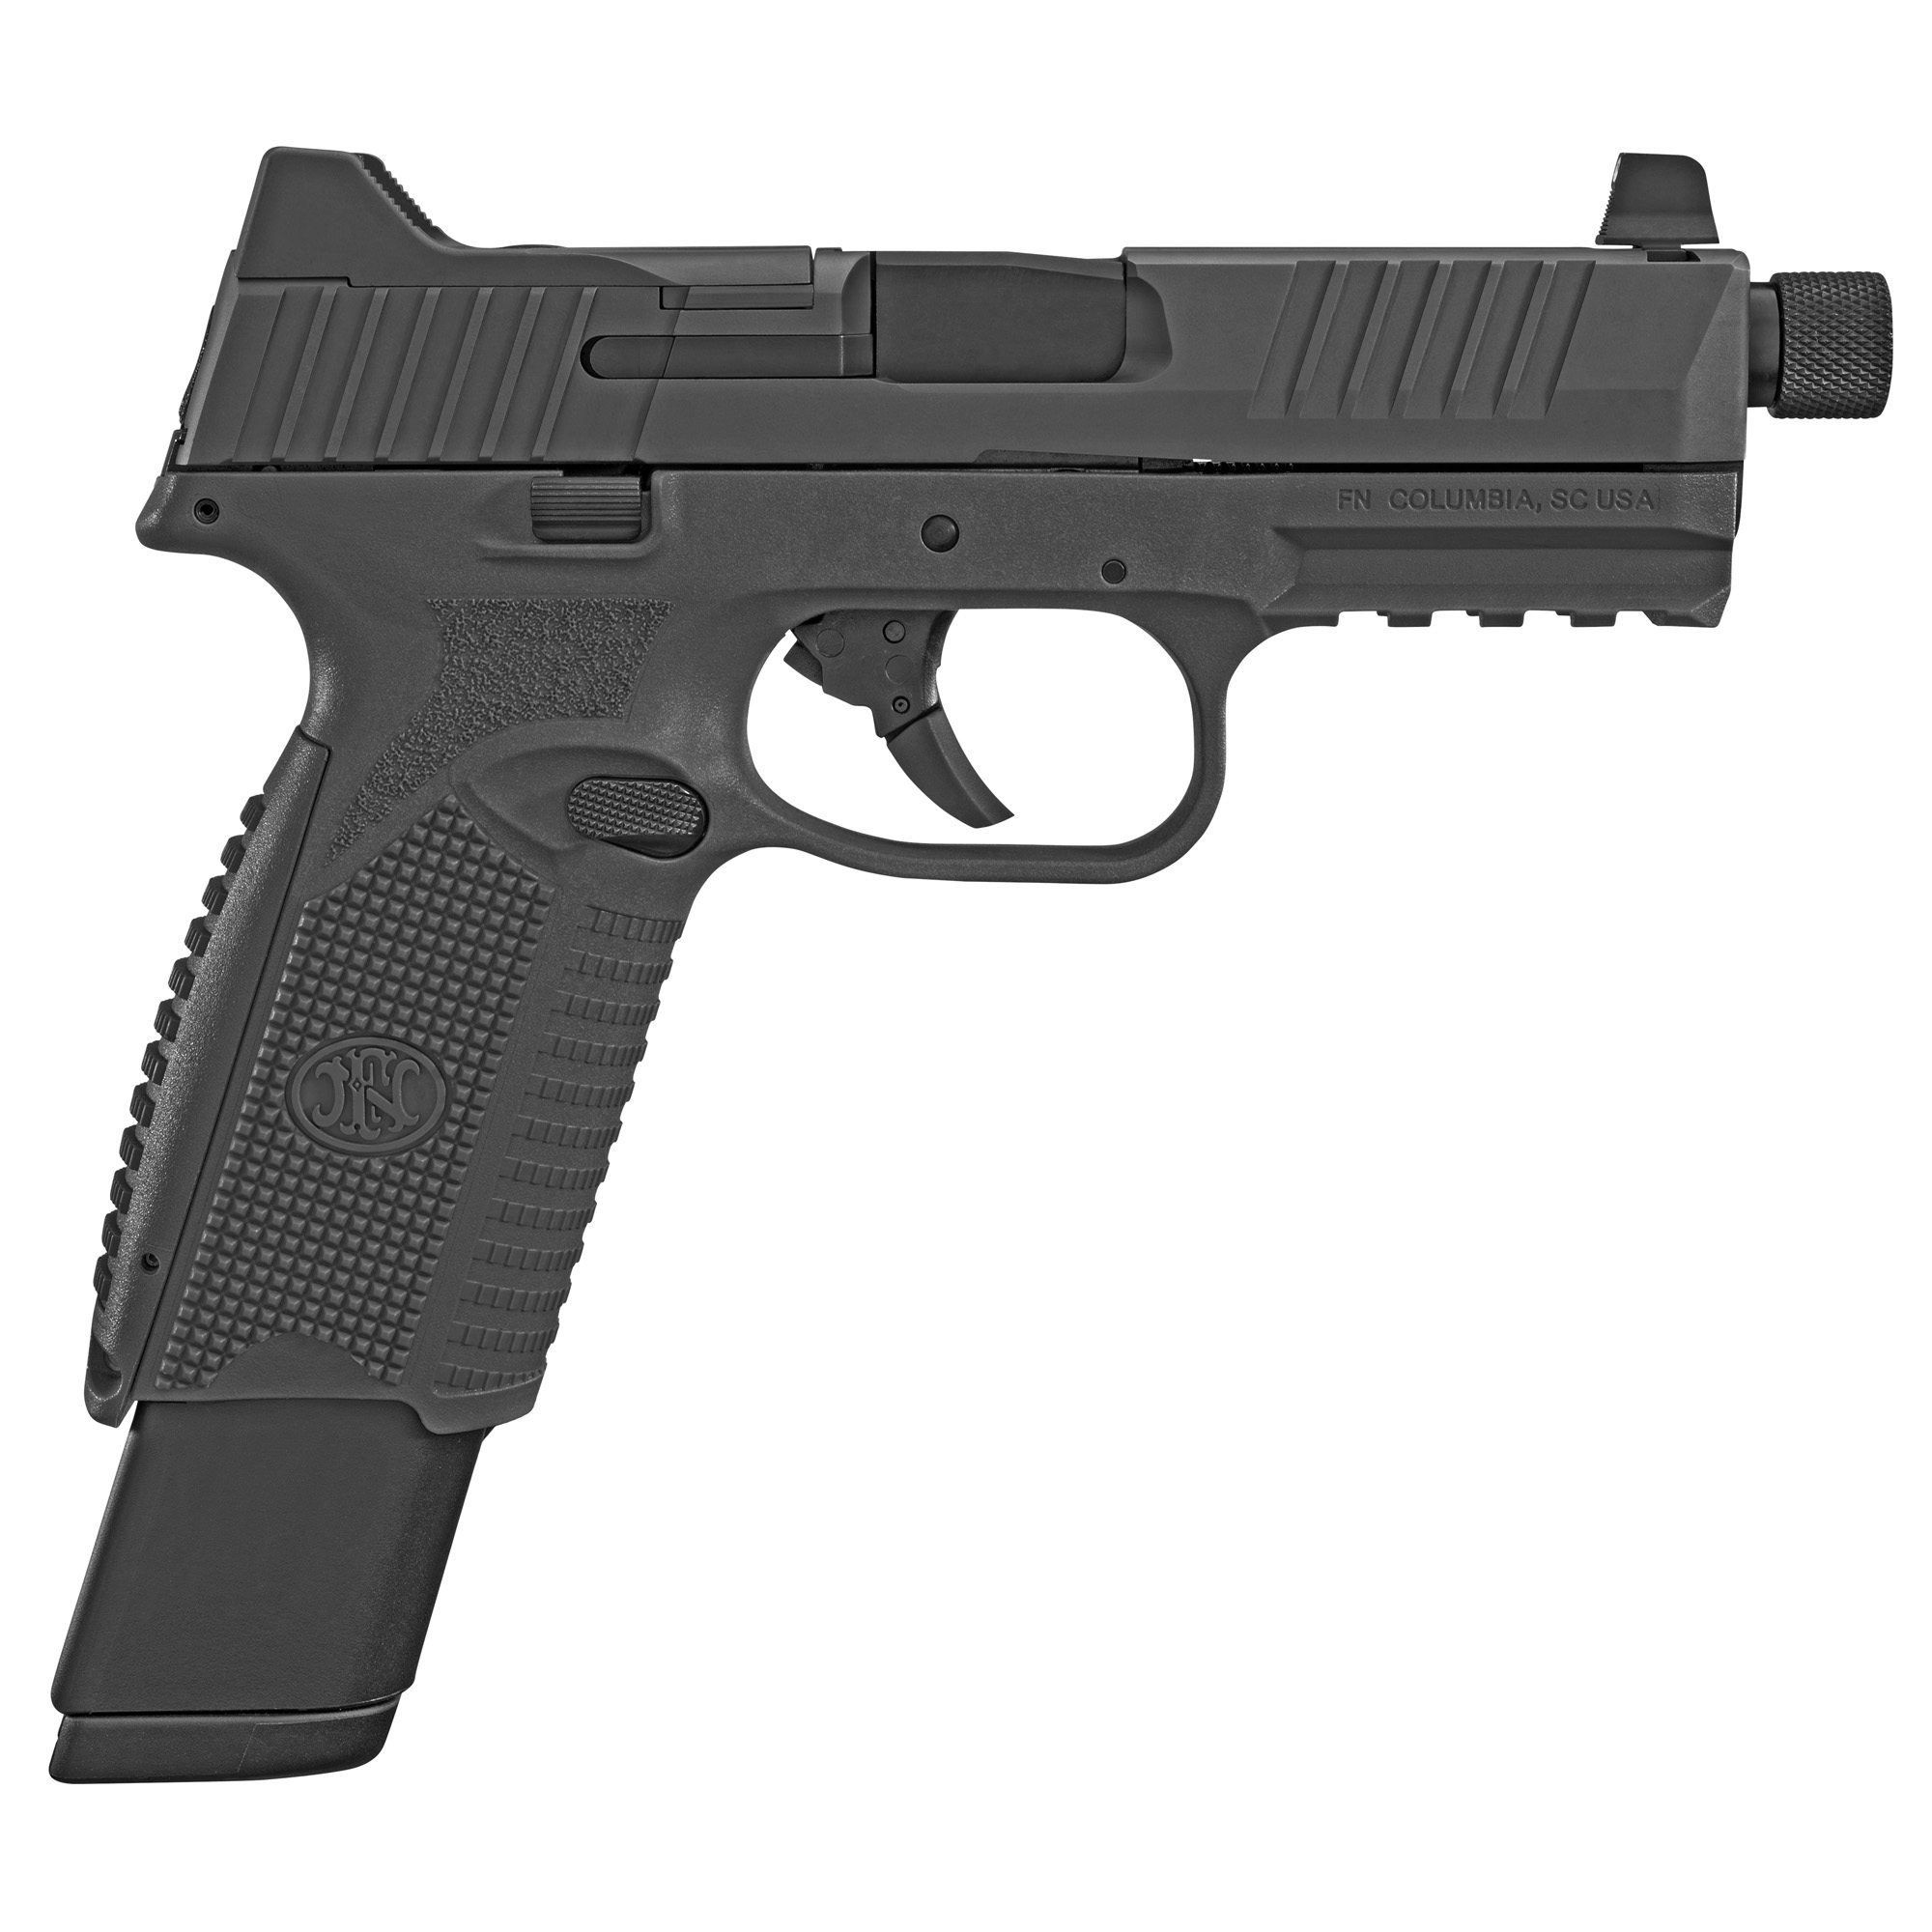 """The FN 509(R) Tactical"""" an extension of the FN 509 family"""" is based on FN's submission pistol that the U.S. Army tested for its Modular Handgun Trials"""" but includes the significant improvements to the design that were implemented in the FN 509. The pistol features the company's patent-pending Low-Profile Optics Mounting System(TM) that enables the platform to accept more than ten commercially-available miniature red dot (MRD) optics that co-witness with the suppressor-height night sights and remain adaptable to future optics releases with no requirement of direct milling of the slide. The slide cap"""" for use when not shooting with an optic"""" has raised sight wings that protect iron sight alignment if the pistol is dropped or jostled"""" and provides a textured ramp for racking the slide against a belt loop"""" pant pocket or boot. An FN-signature 4.5-inch"""" cold hammer-forged"""" stainless-steel barrel with target crown"""" 1/2"""" x 28 threads that accept the bulk of 9mm suppressors available and thread cap with integrated O-ring to prevent loosening during use complete the top end. Lastly"""" the 24-round magazines"""" nearly identical in length to the pistol's slide"""" maximize ammunition capacity without impacting carry convenience."""